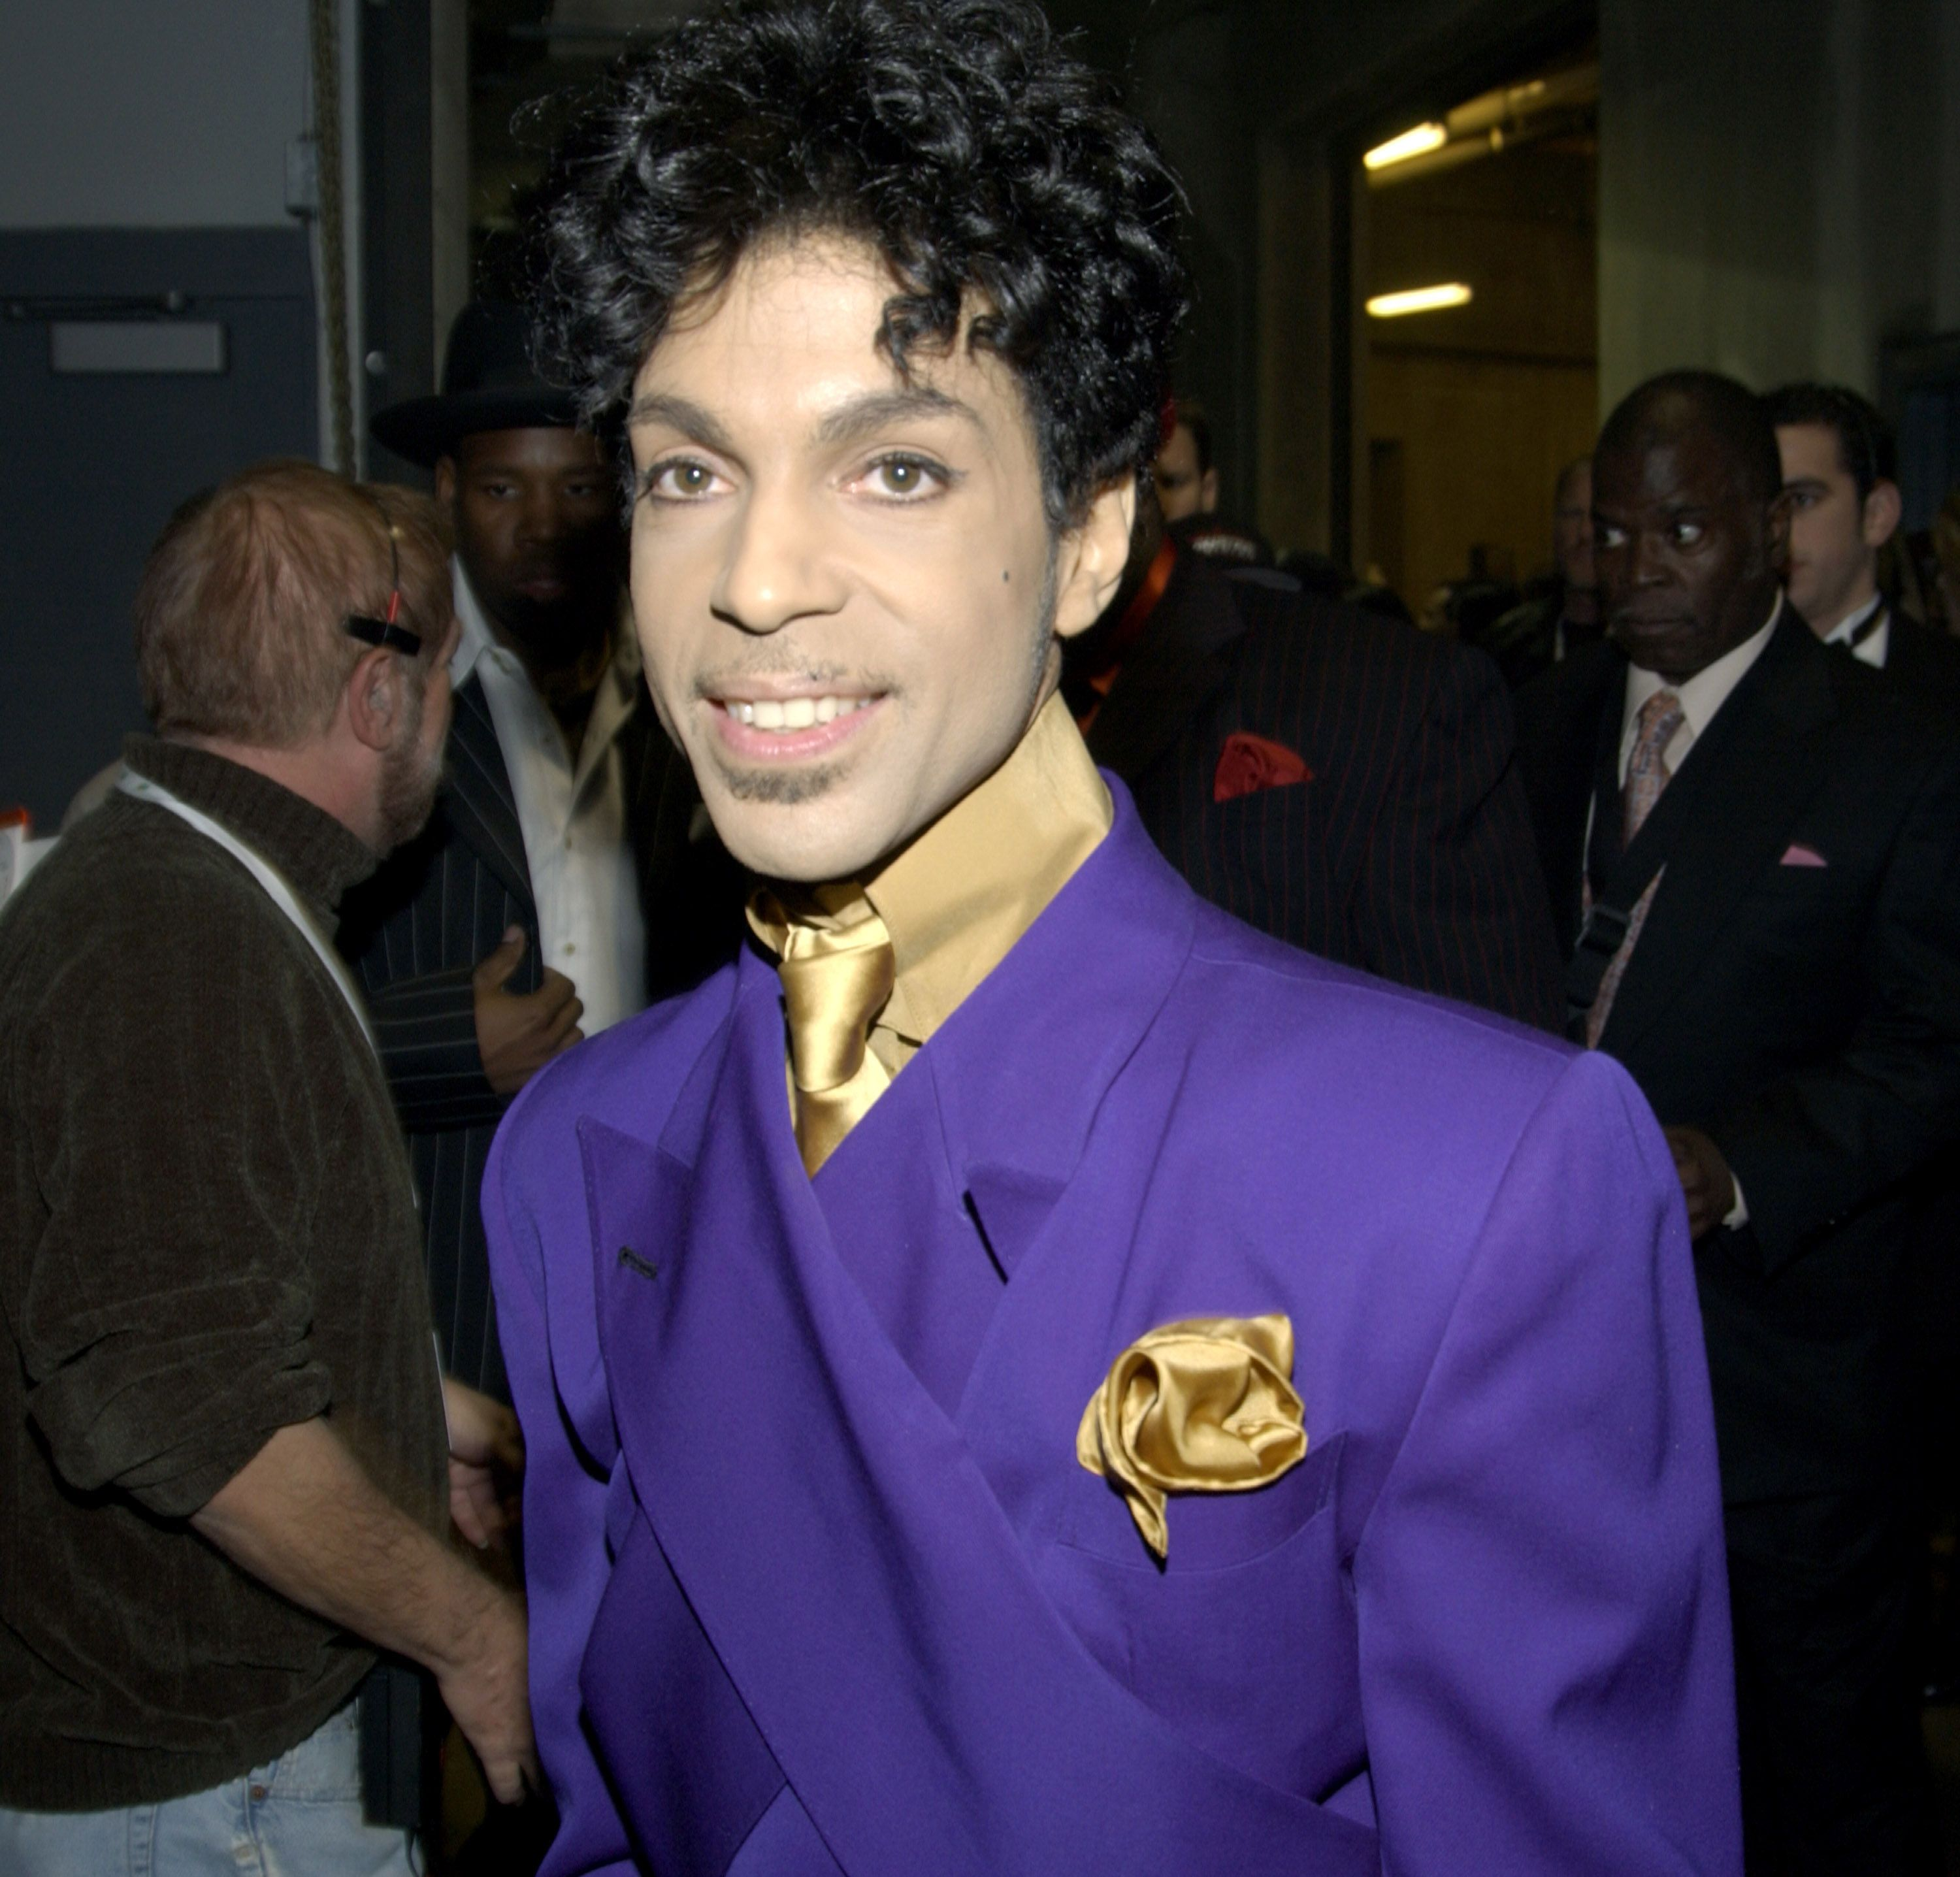 Prince at The 46th Annual GRAMMY Awards - Backstage   Photo: Getty Images